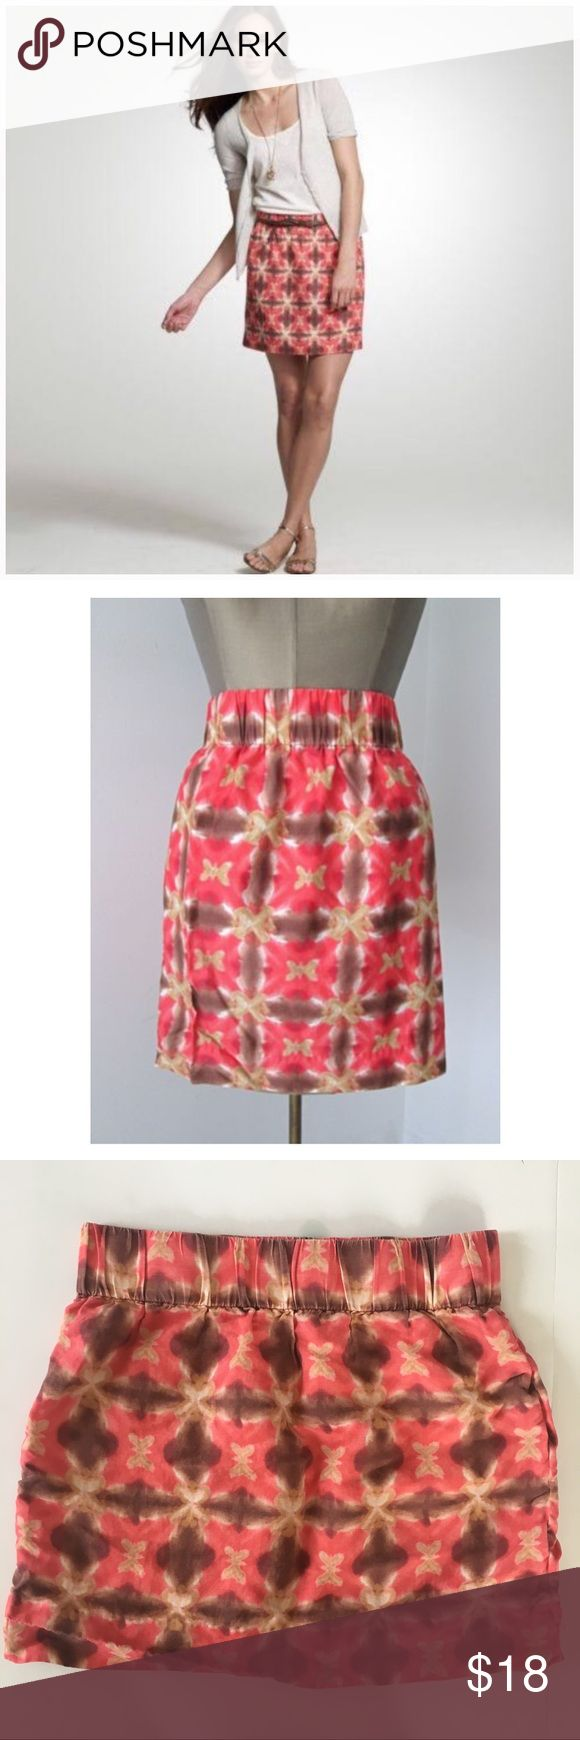 J. Crew Butterflie Tie Dye Skirt J. Crew red, tan, and brown butterfly tie dye cotton mini skirt. Elastic waist. 55% silk 45% linen. This skirt is perfect for fall when paired with tights/leggings + boots and sweater/Cardigan. 🍂🍁 J. Crew Skirts Mini